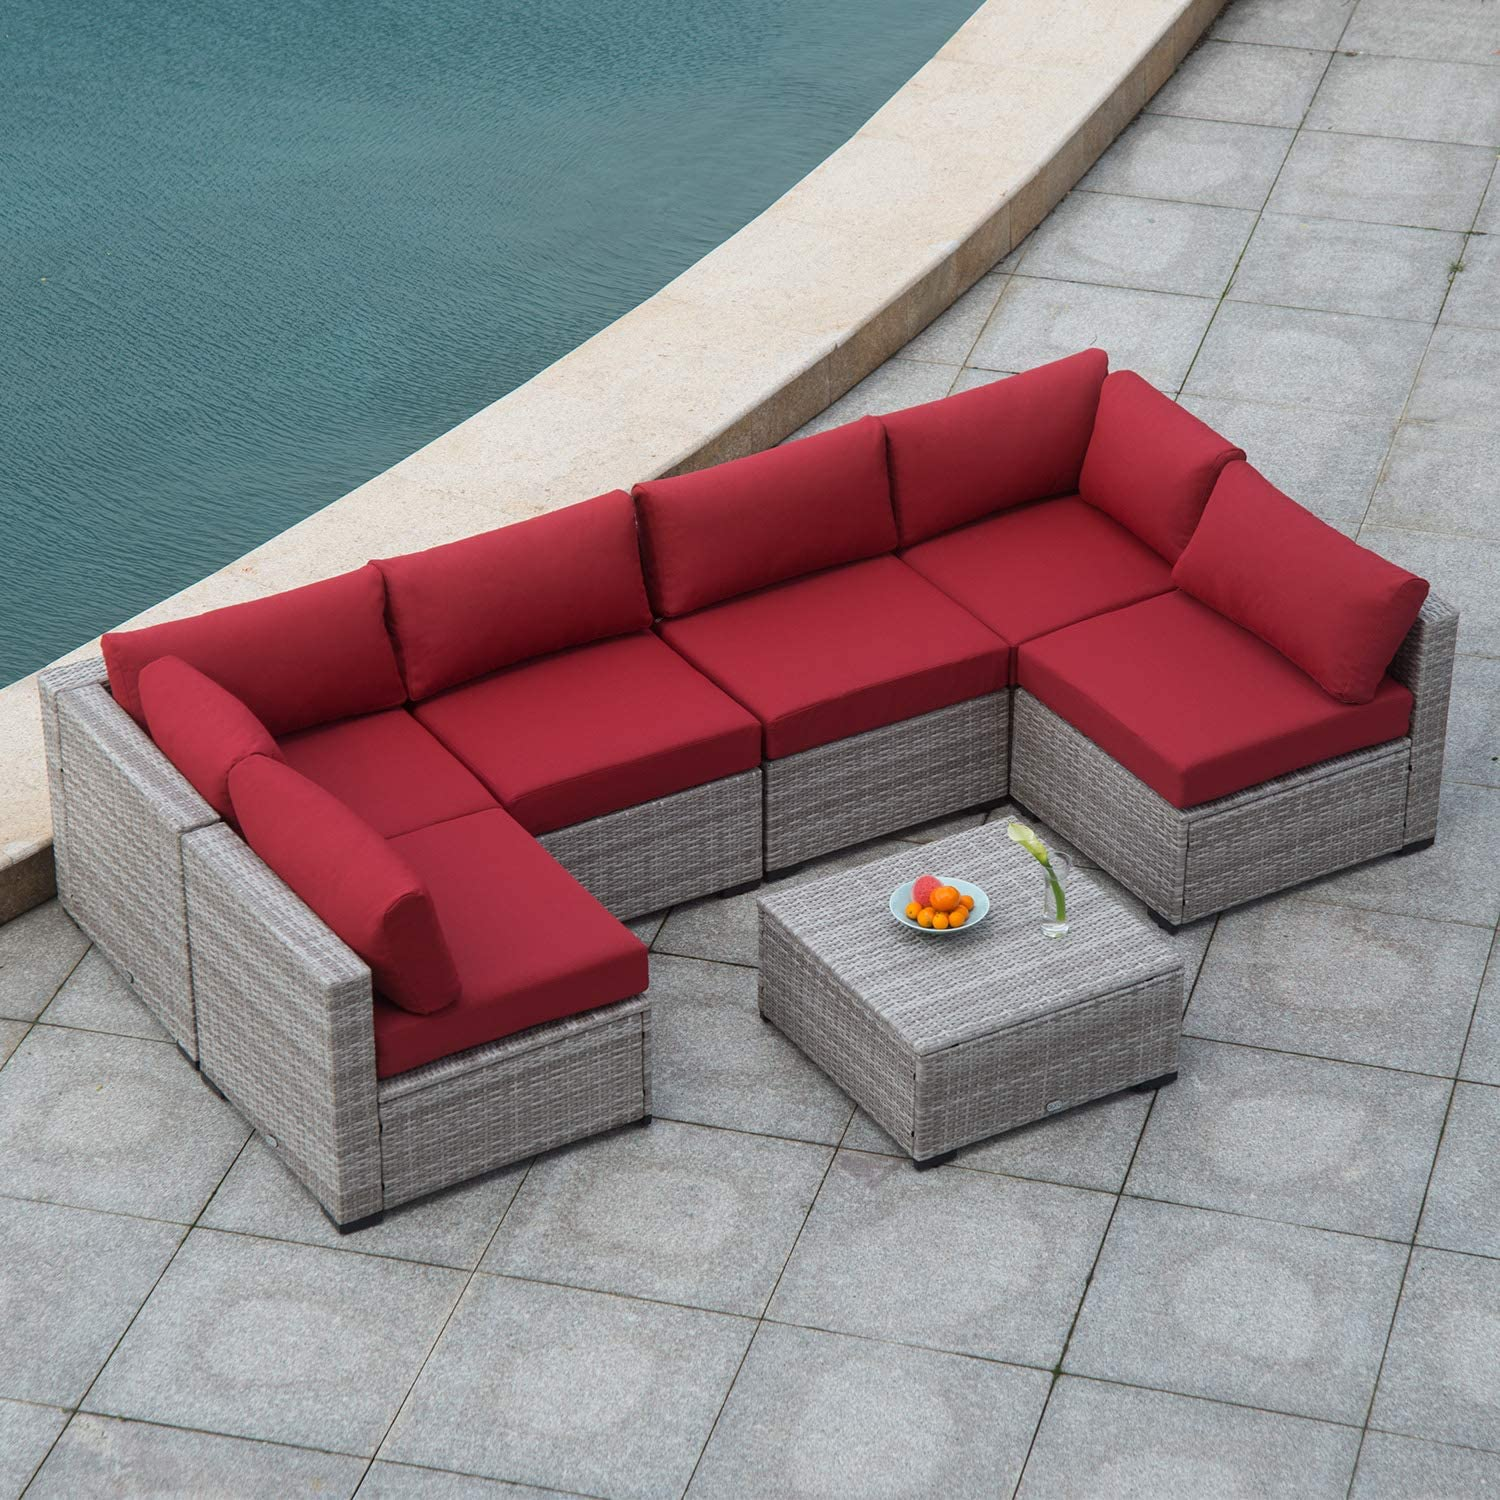 Max 50% OFF Diensday Outdoor Max 51% OFF Furniture 7-Piece Sectional Set Sofas Sofa All-